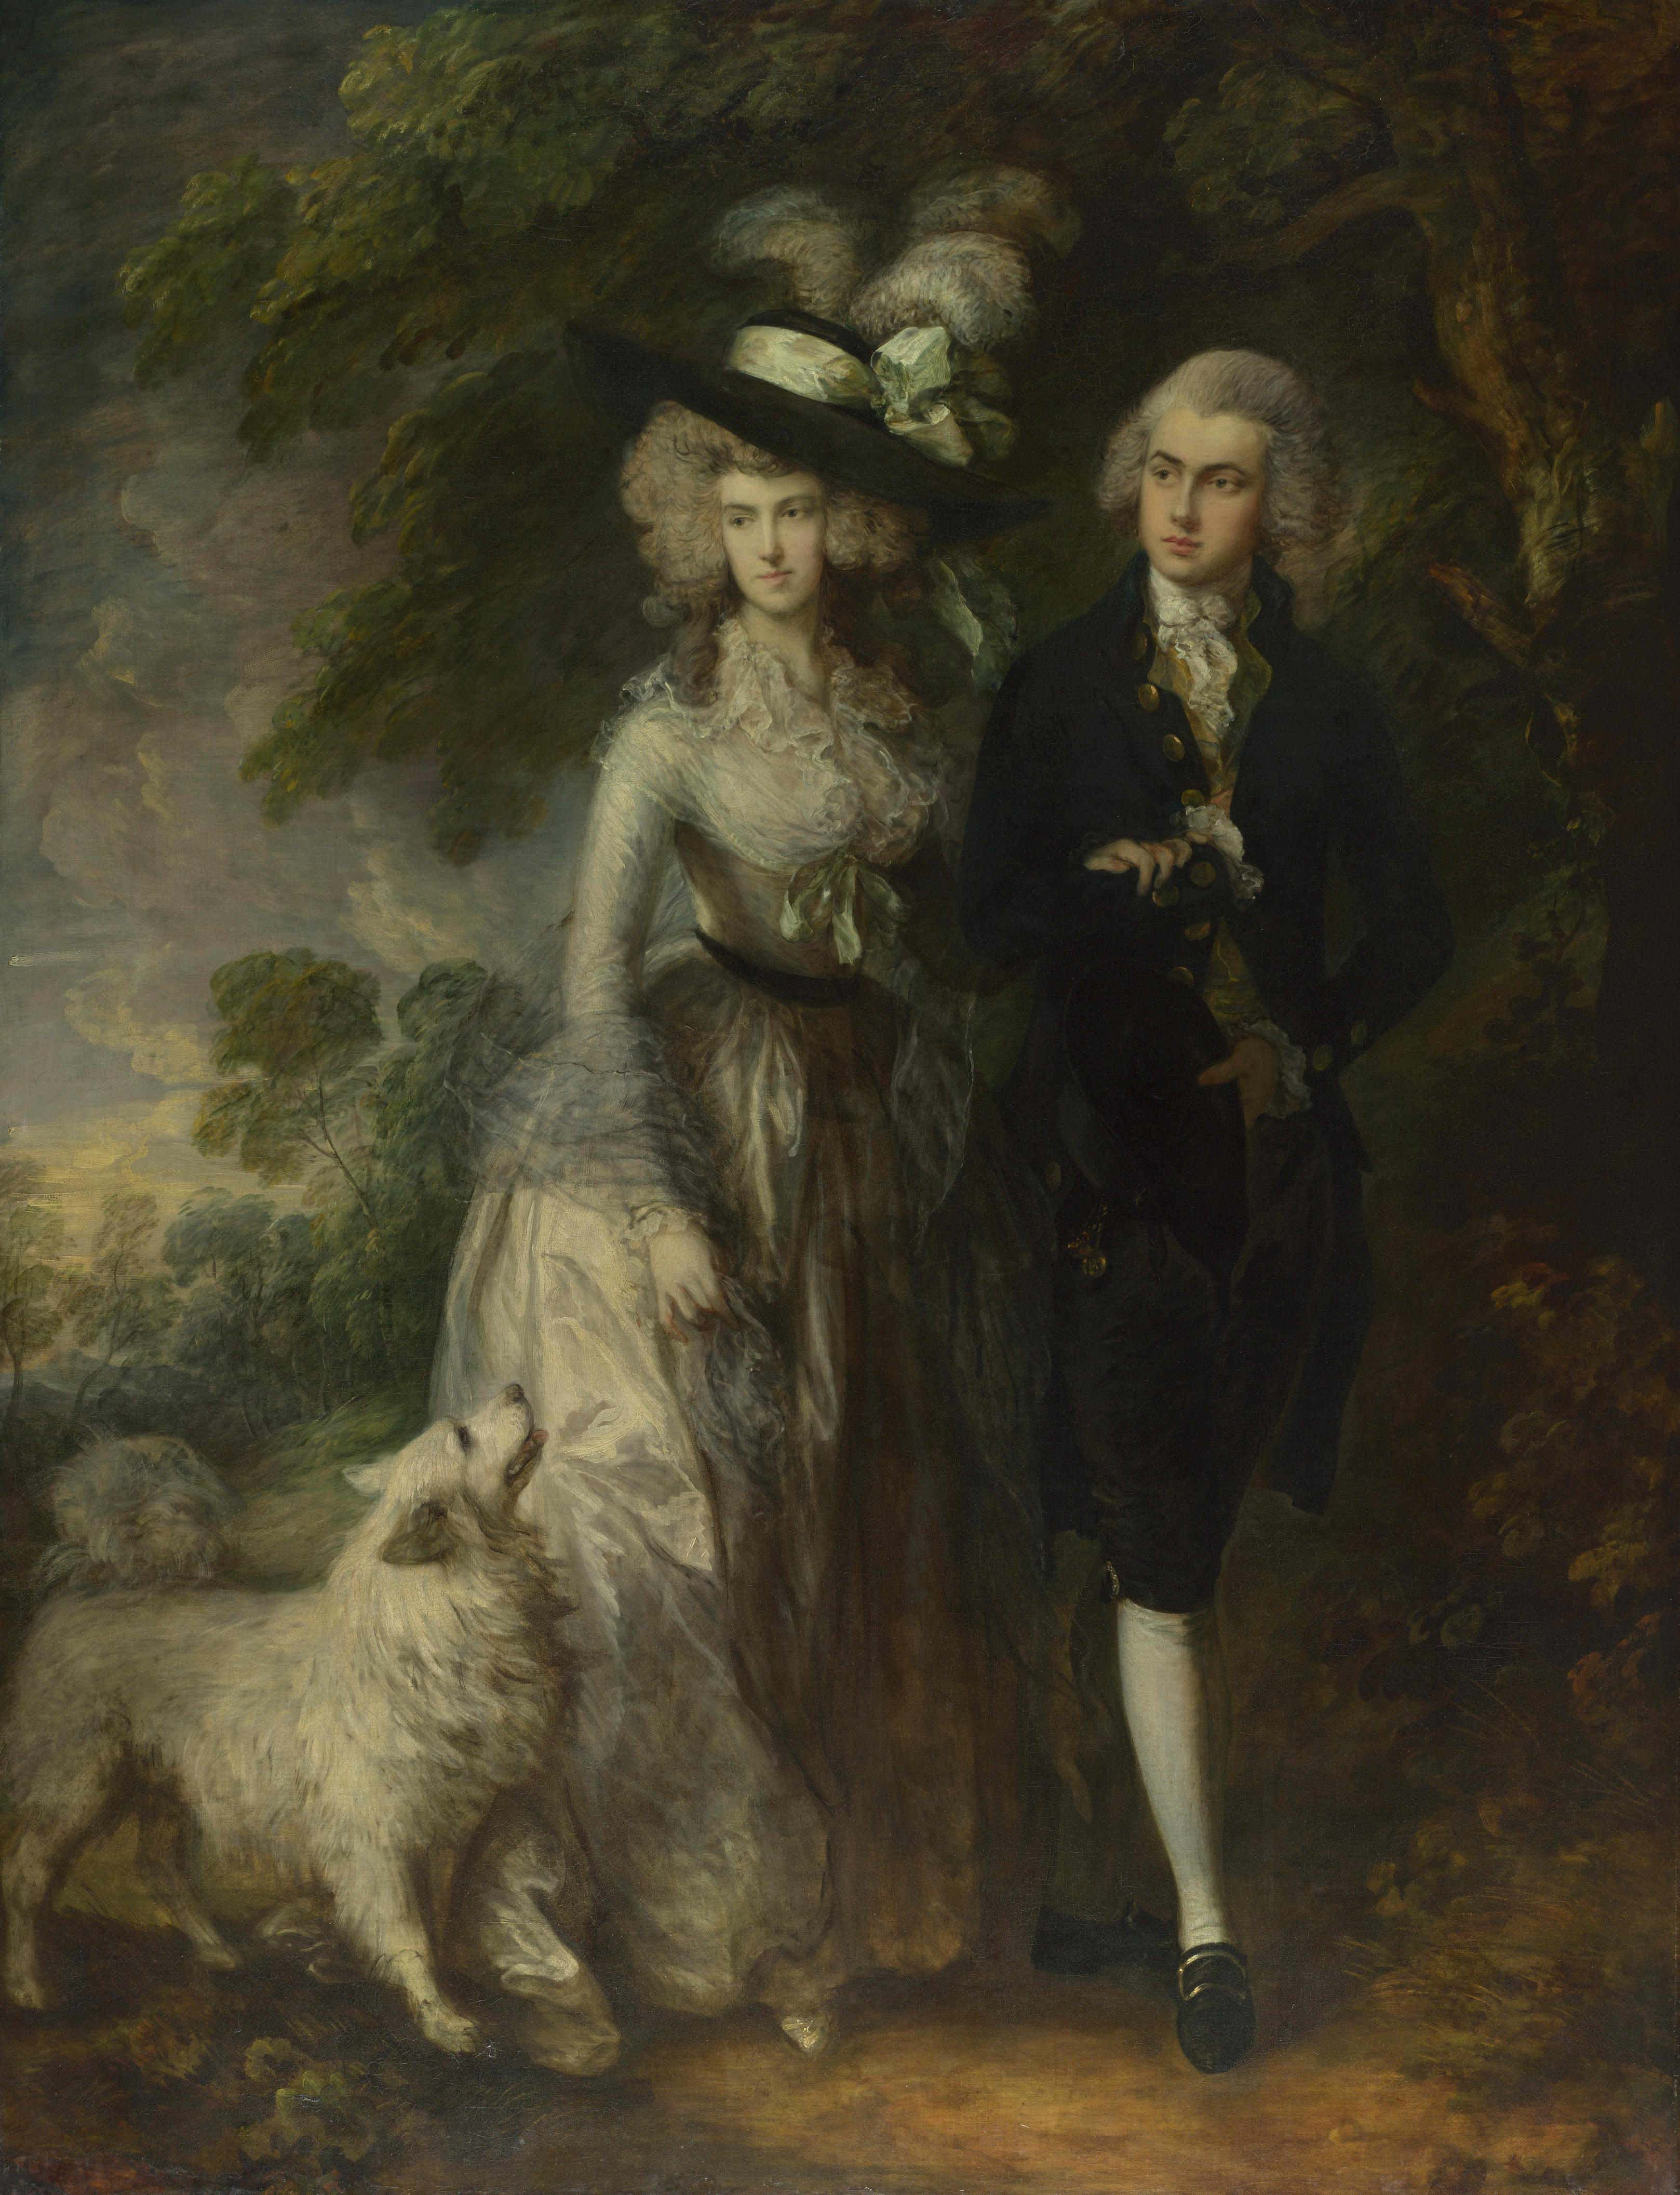 Un hombre ataca una pintura de Gainsborough en la National Gallery de Londres 1